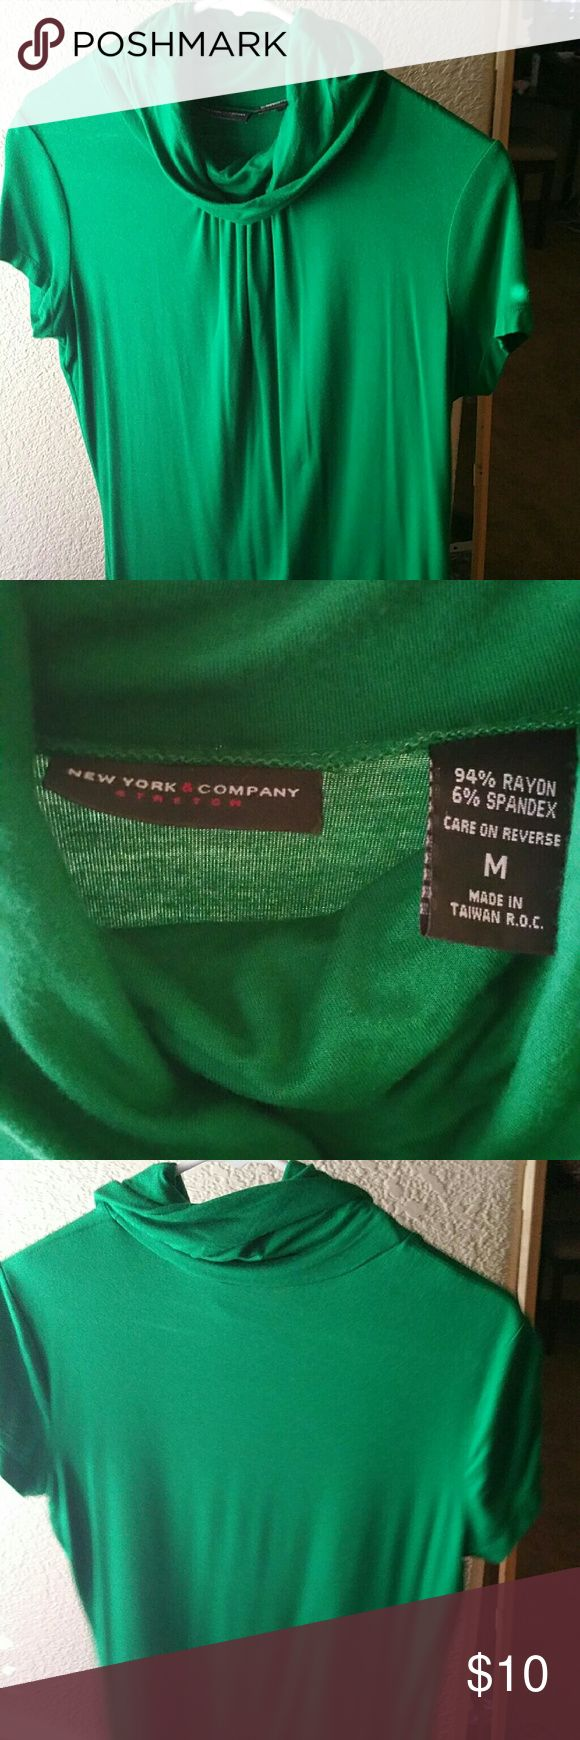 Green blouse Green short sleeve blouse with relaxed fit and loose high neck New York & Company Tops Tees - Short Sleeve